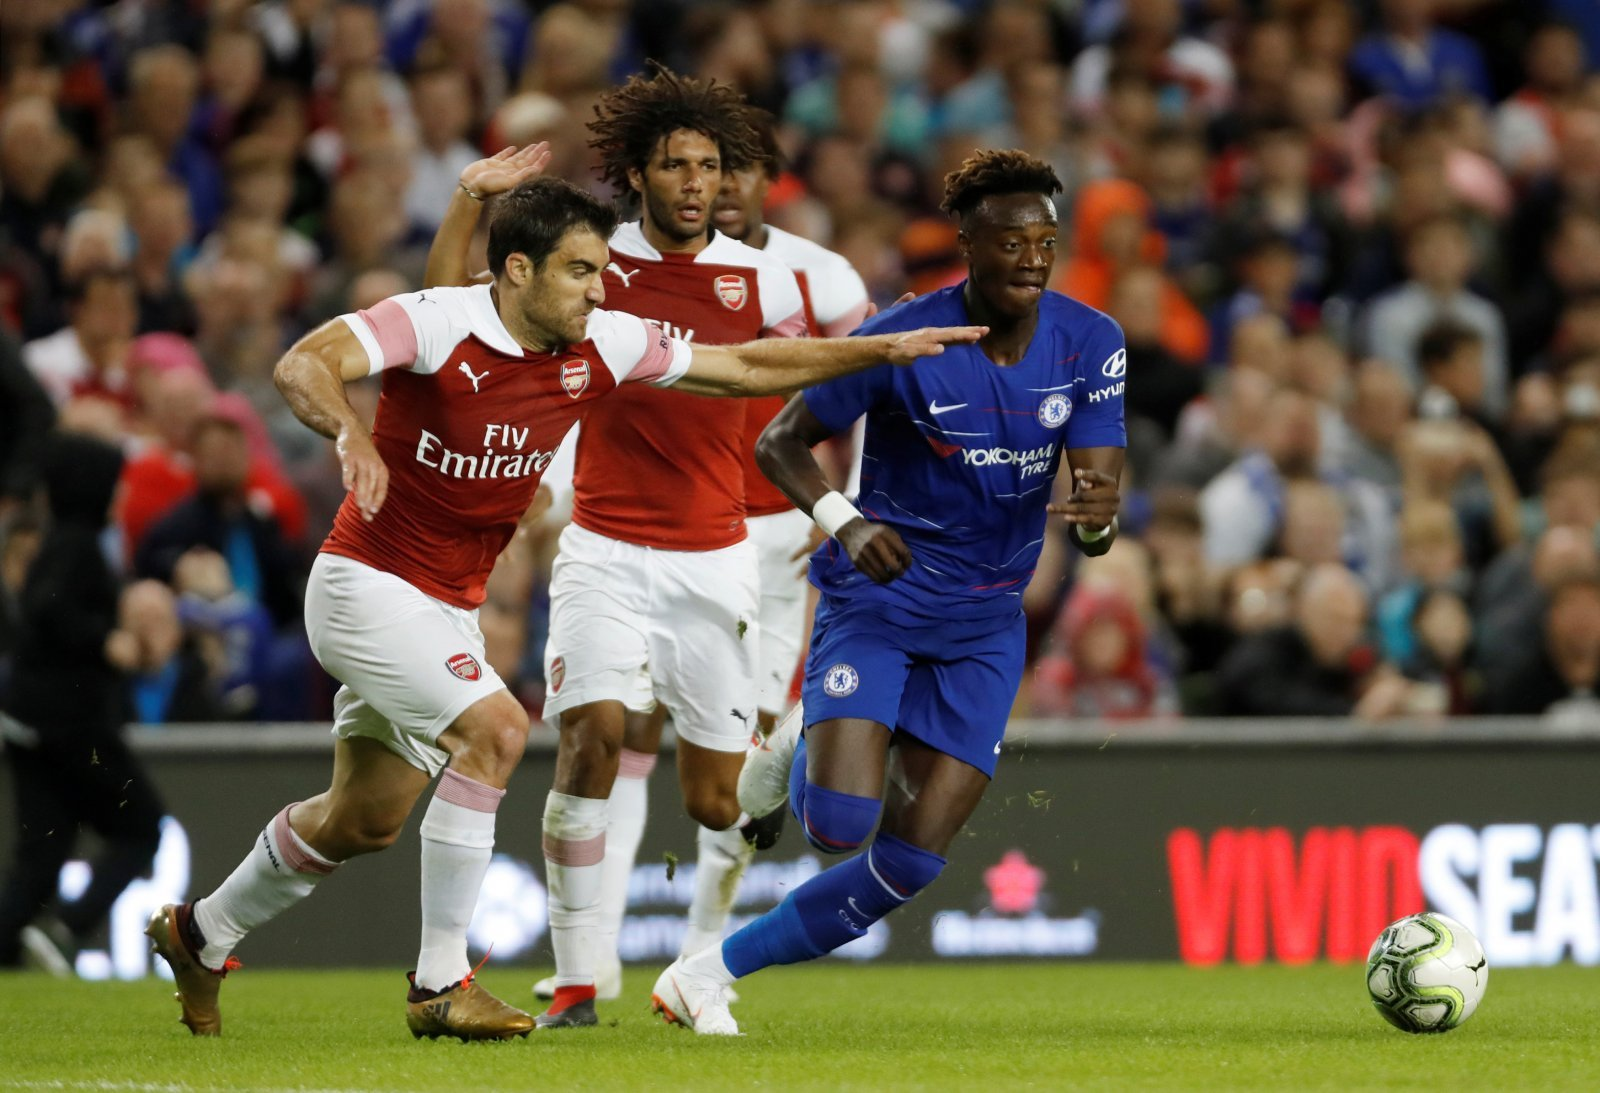 Introducing: Tammy Abraham, the player to benefit most under Frank Lampard at Chelsea